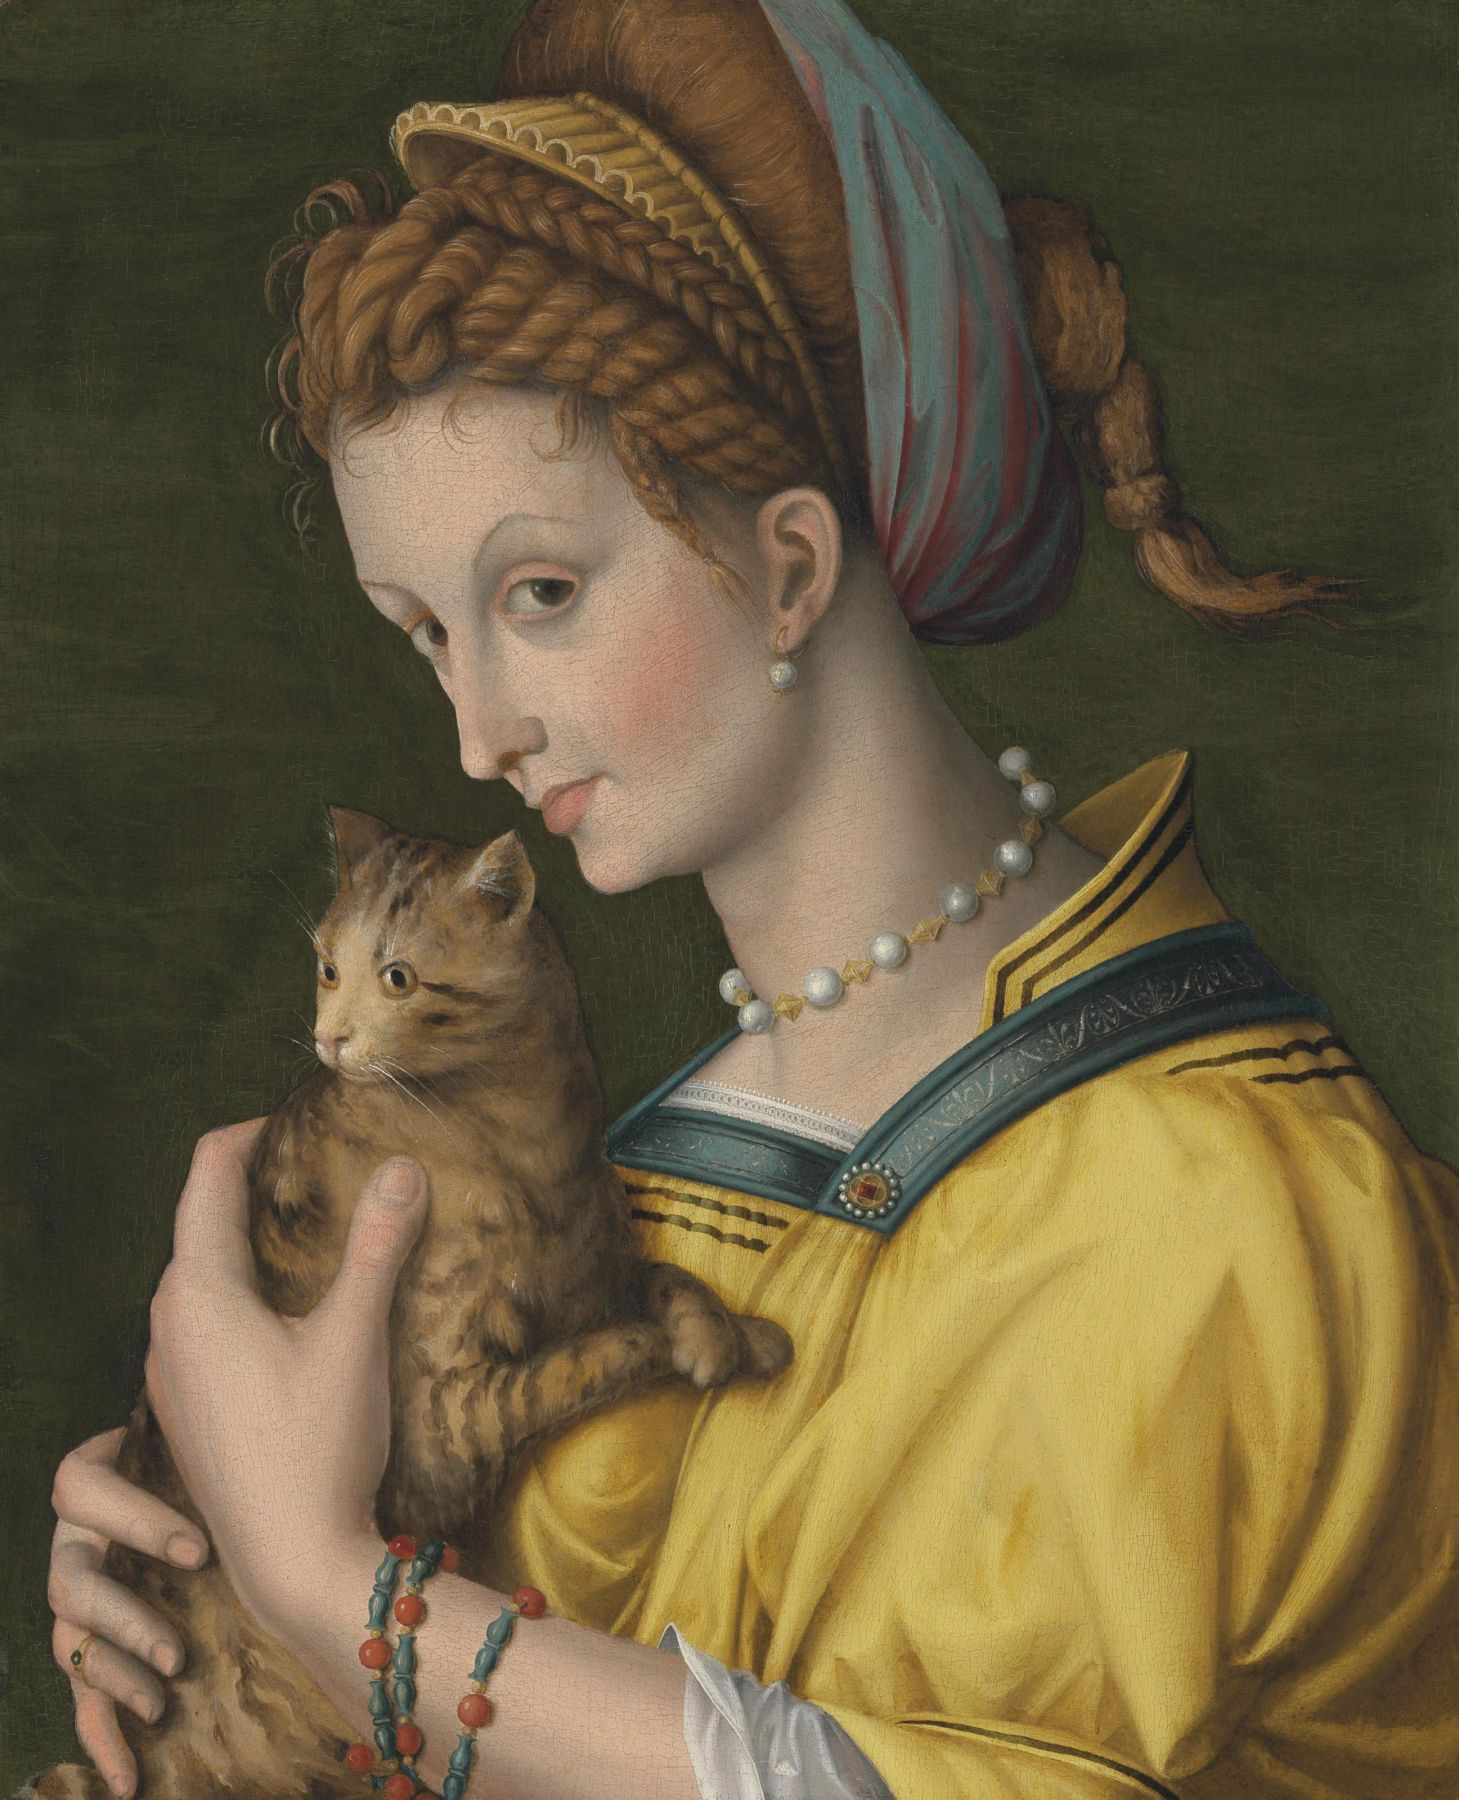 Antonio d'Ubertino Verdi, called Bacchiacca (1499 – 1572) Portrait of a Young Lady Holding a Cat ​Private Collection Nicholas Hall Art Gallery Dealer Old Masters